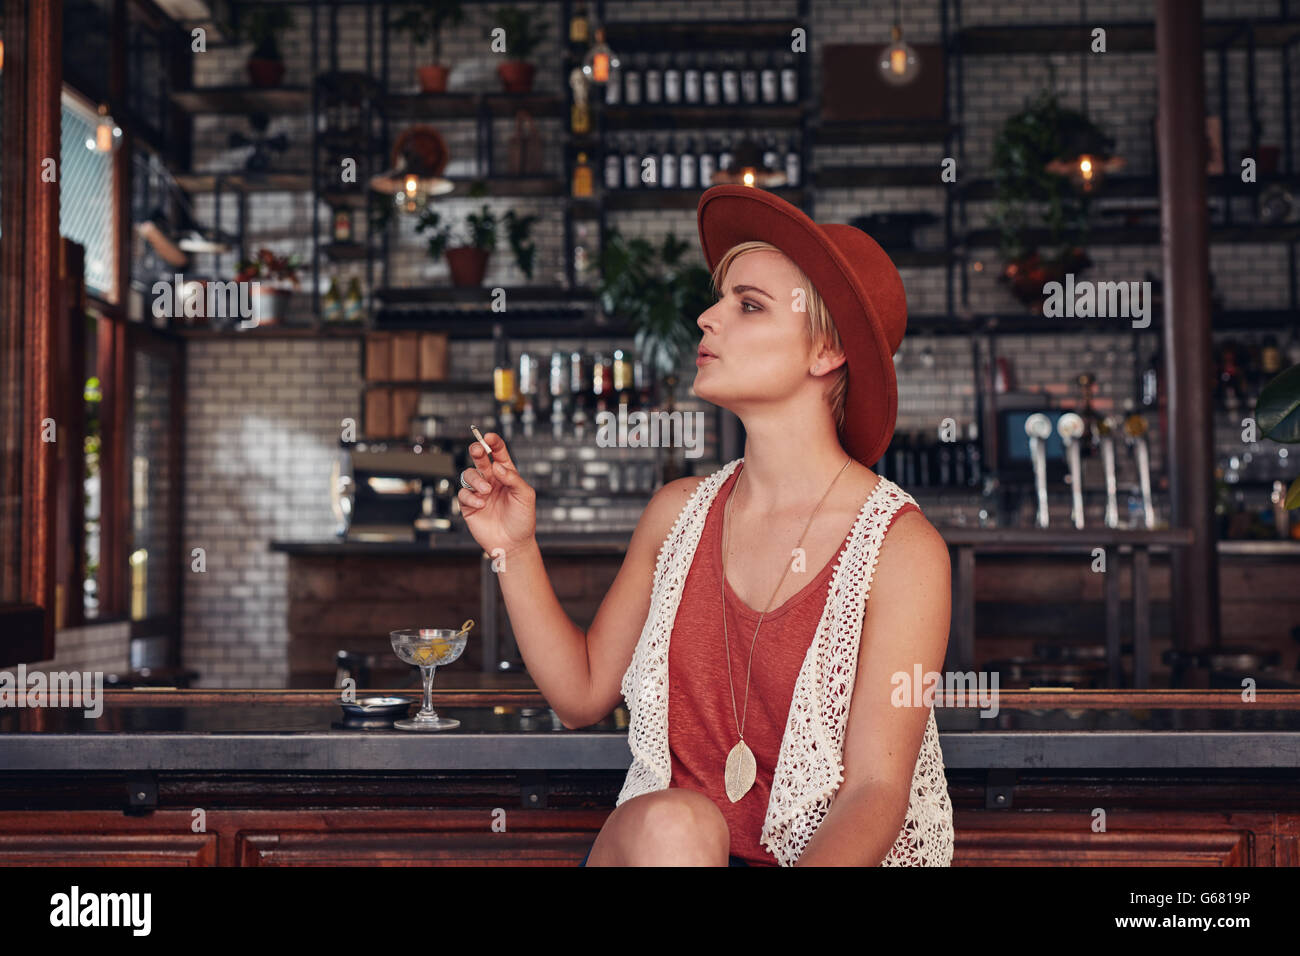 Portrait of attractive young woman fumer dans un bar. La cigarette et à la tenue de route. Photo Stock